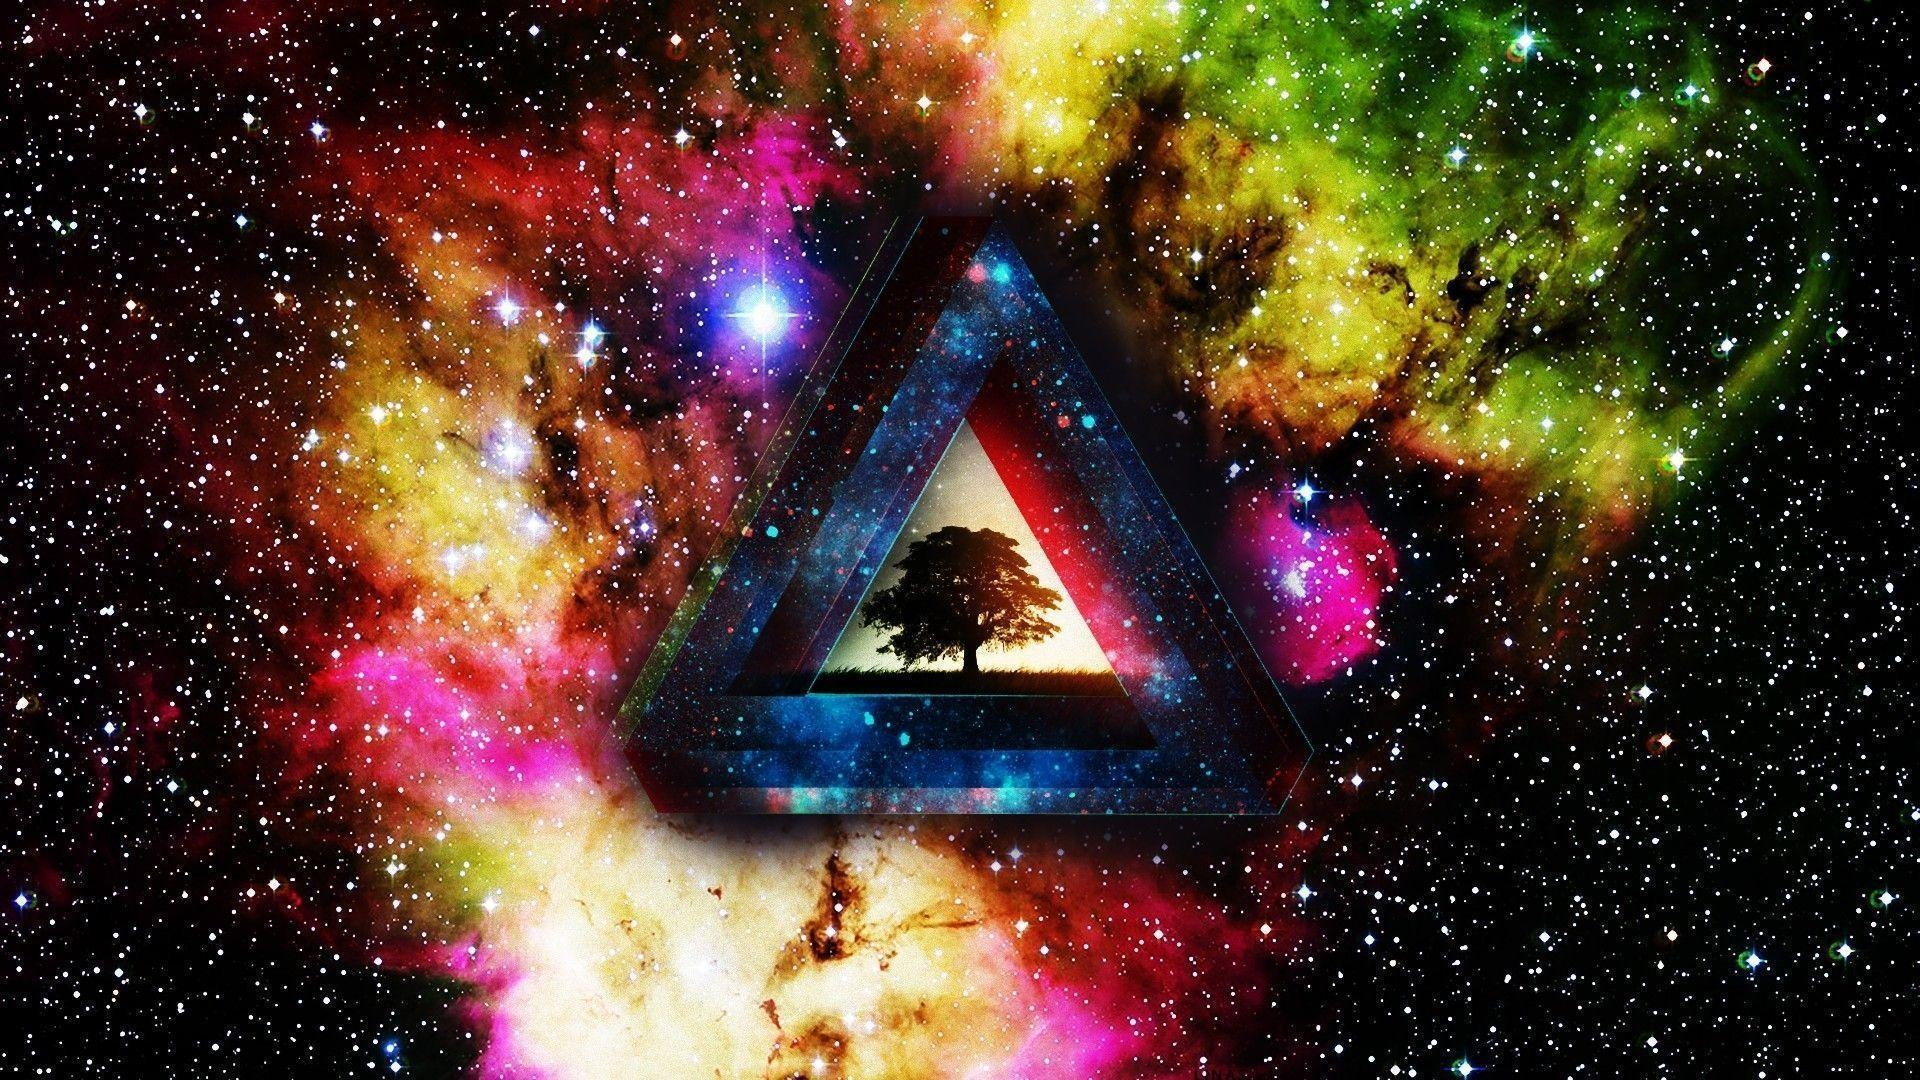 Wallpapers For > Trippy Cat Backgrounds Tumblr